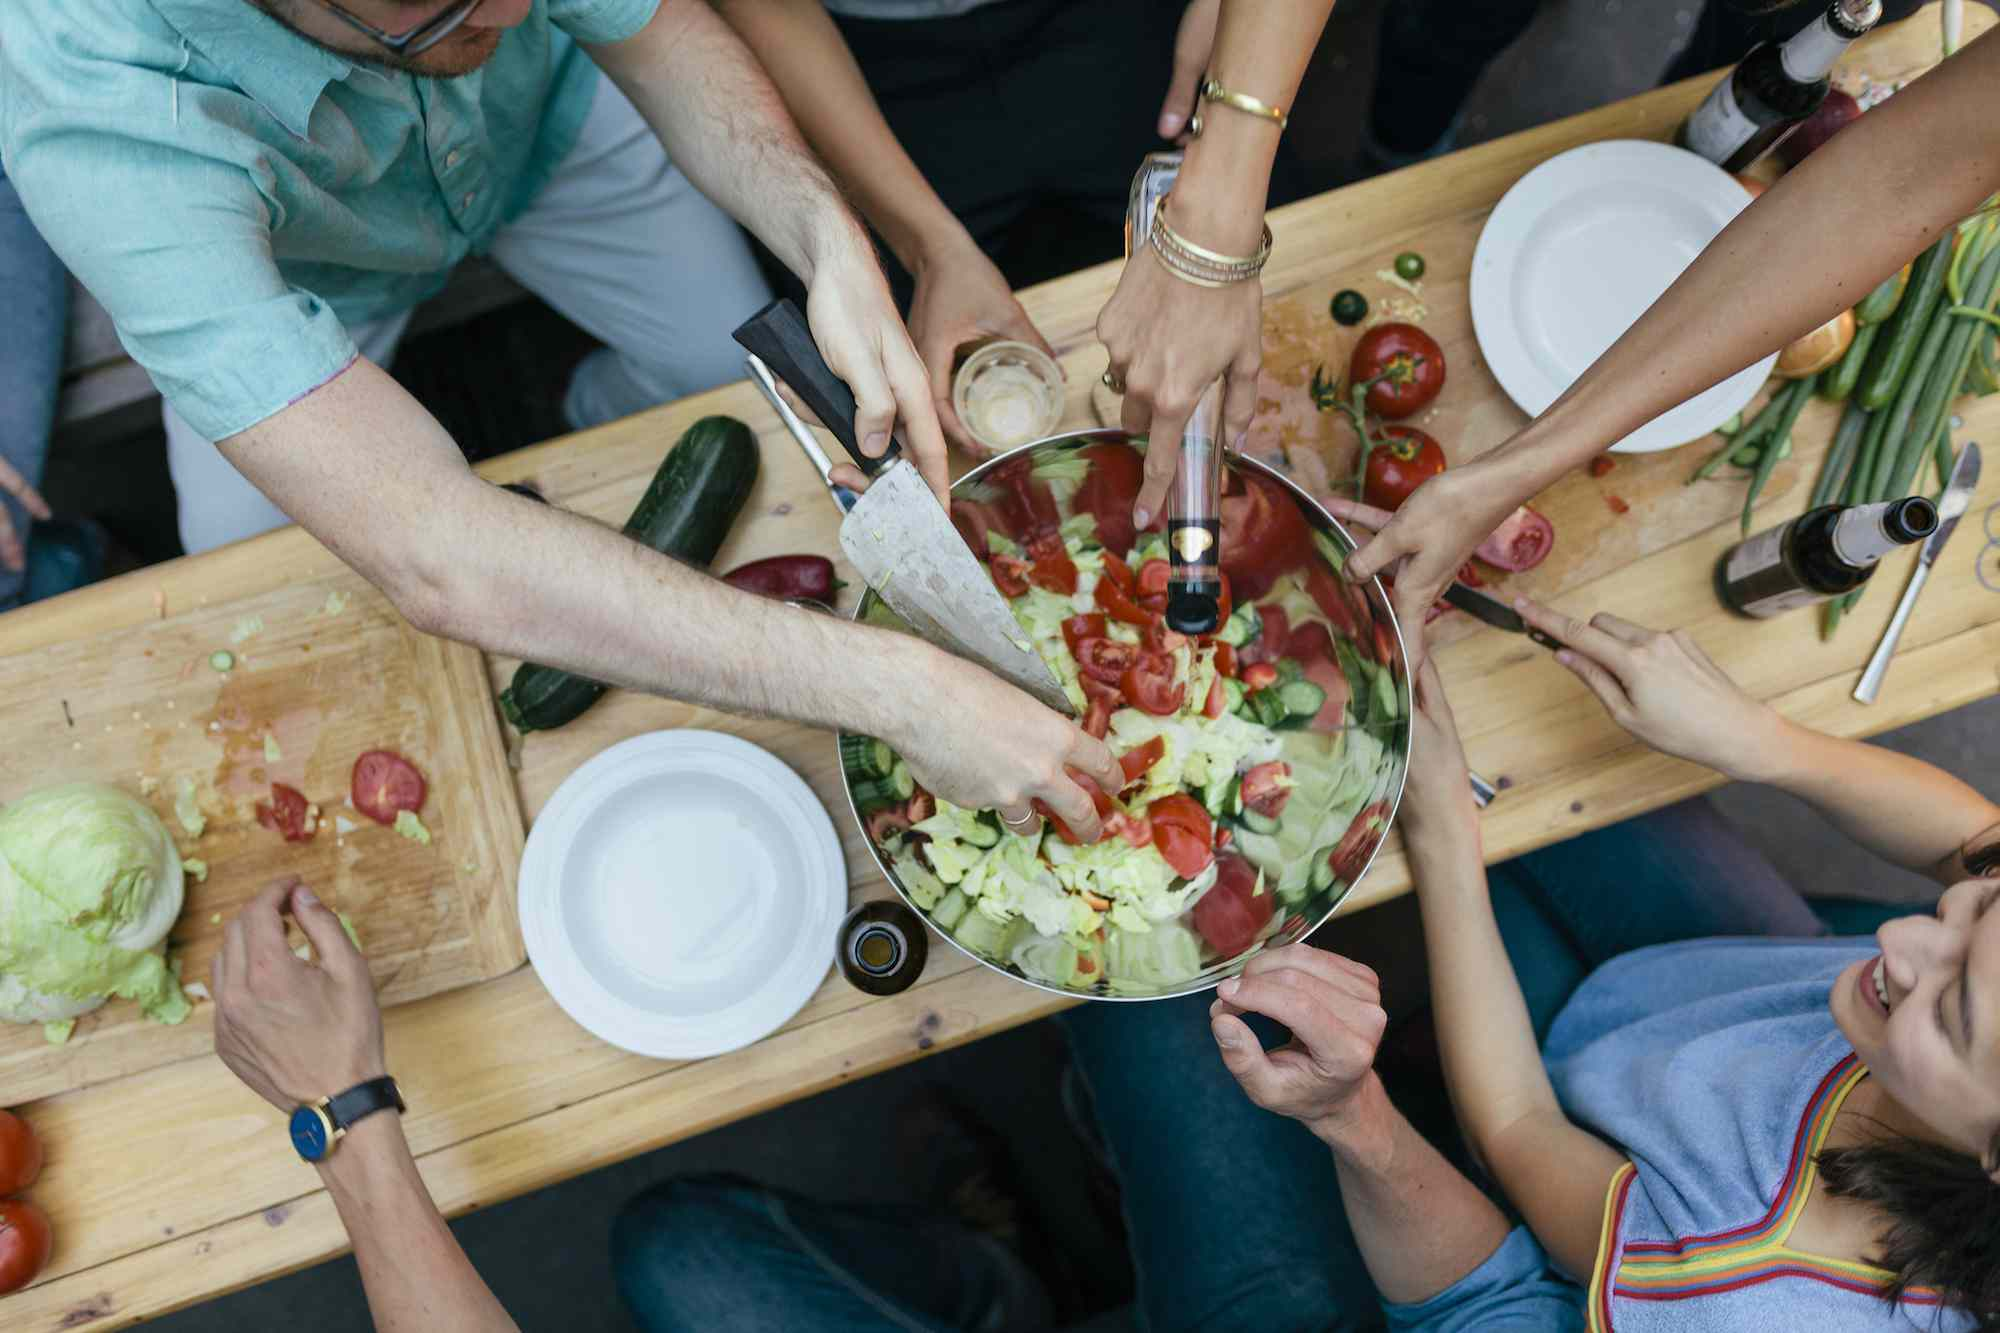 Multiple people gathered around a wooden table preparing a meal